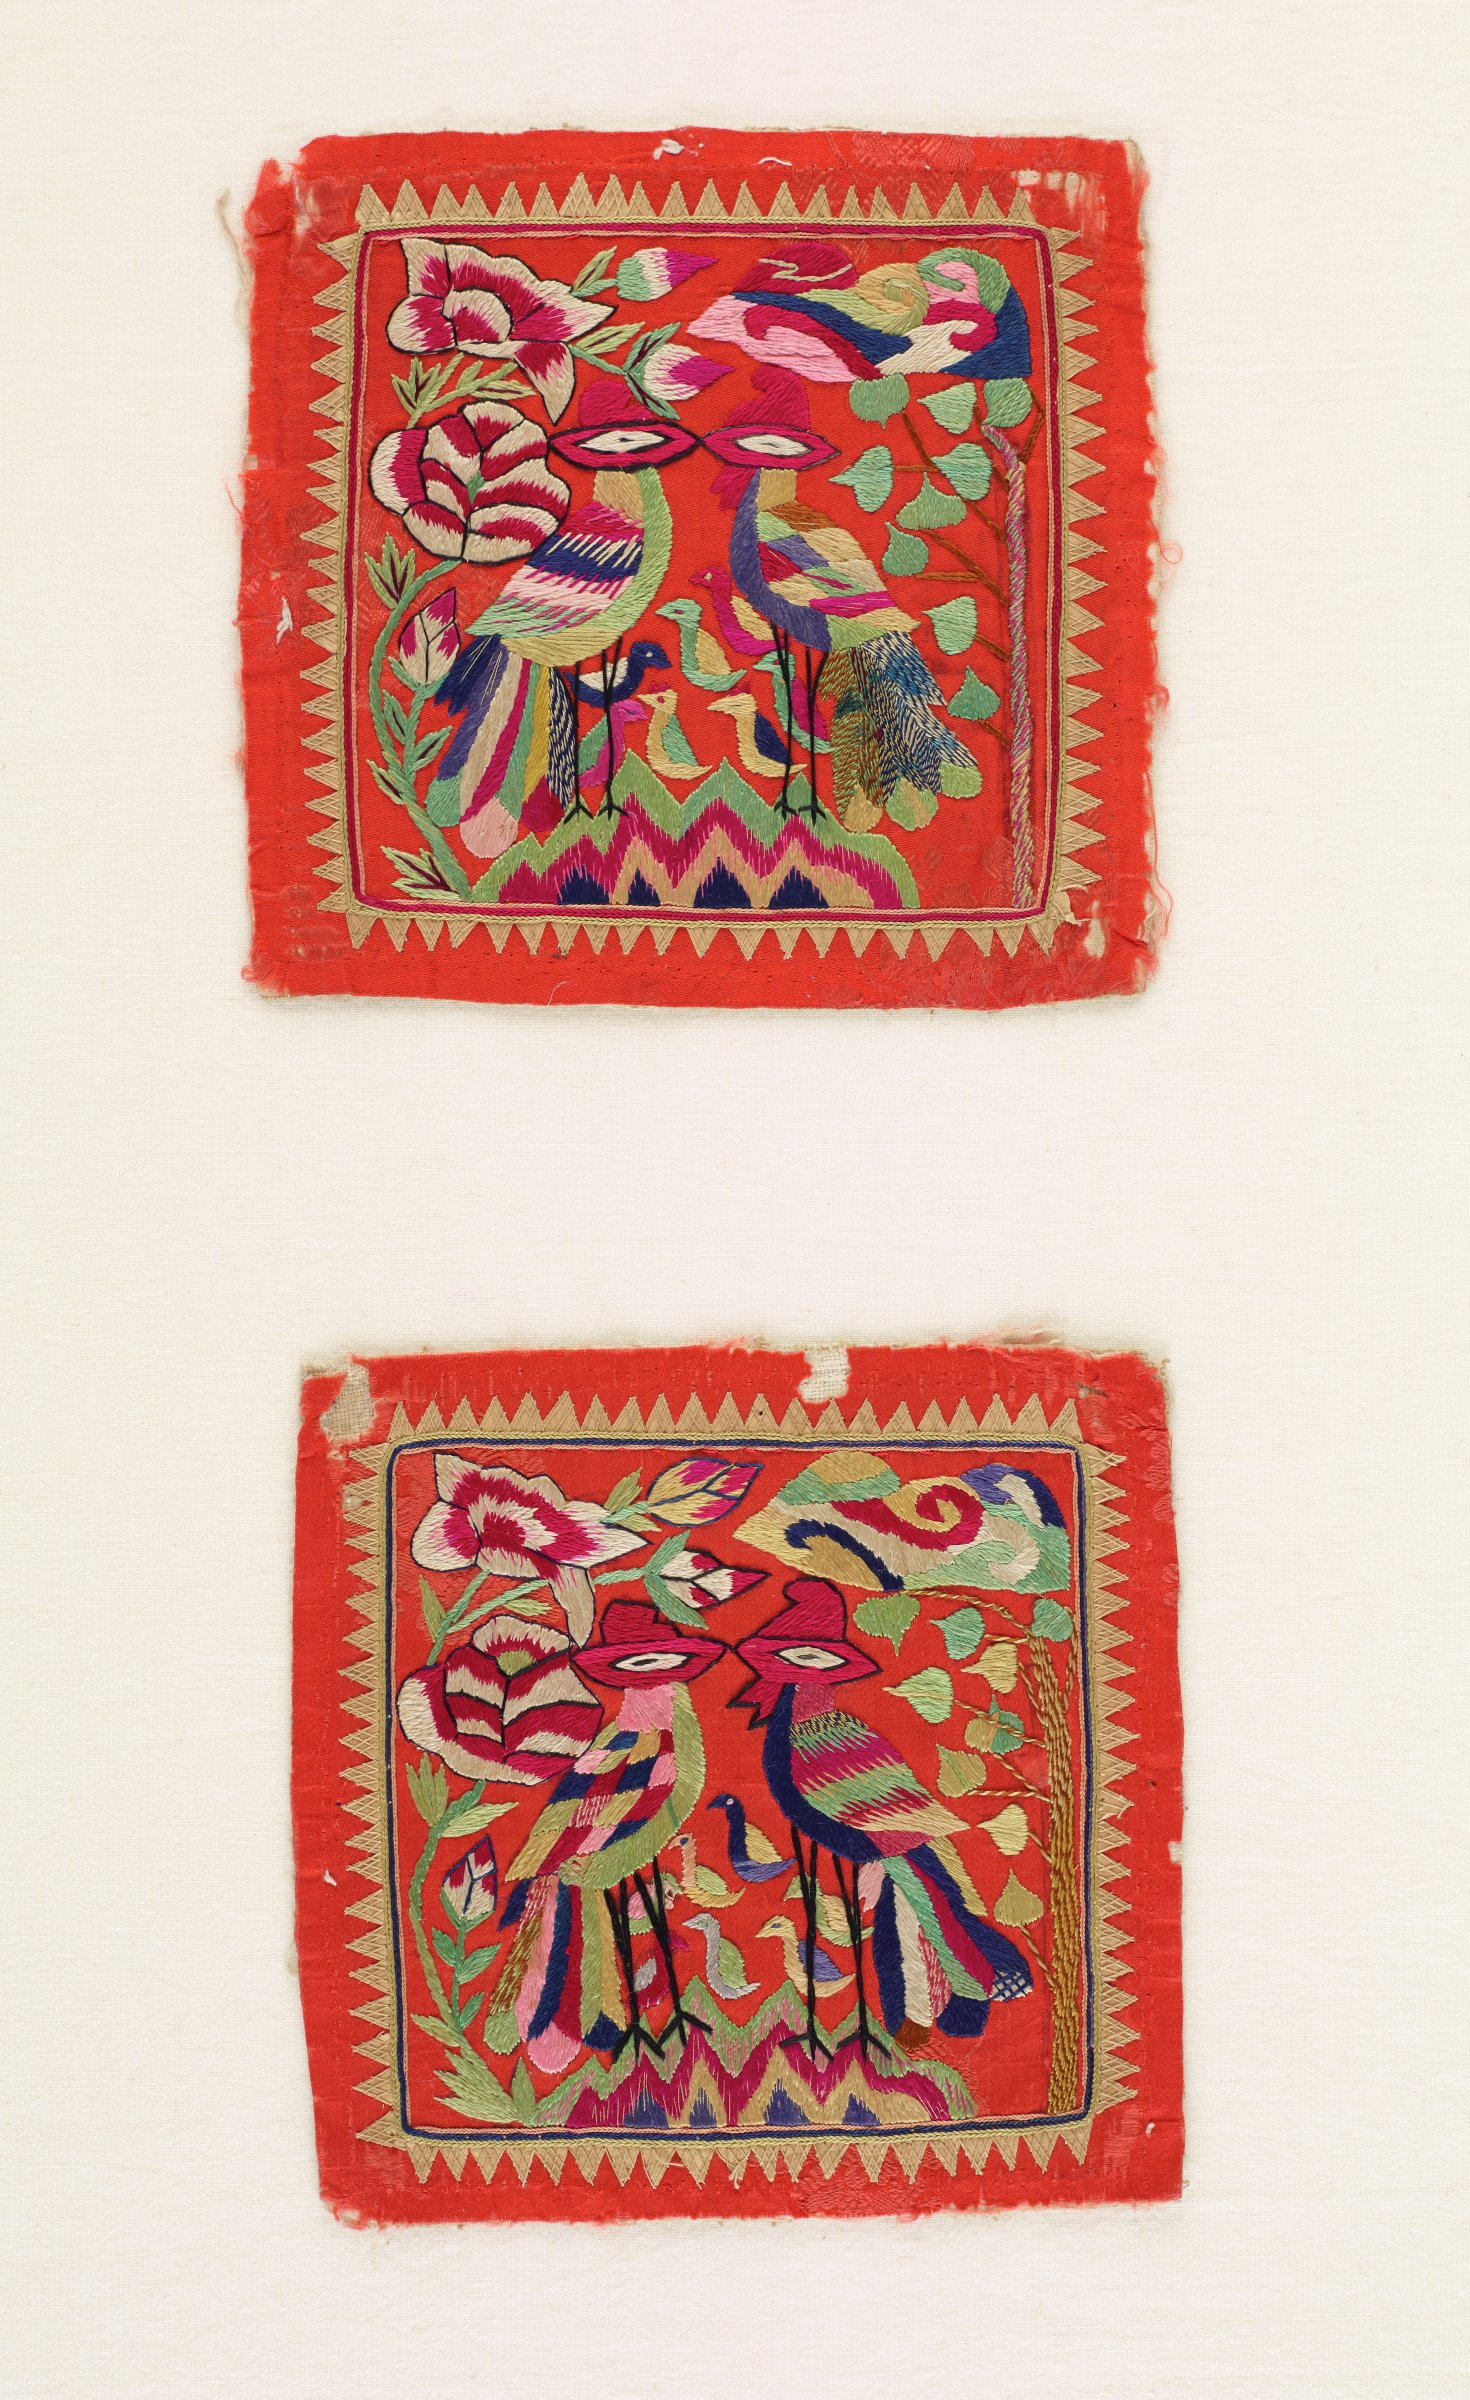 Pair of square pillow ends with embroidered designs of love birds with baby chicks on orange background